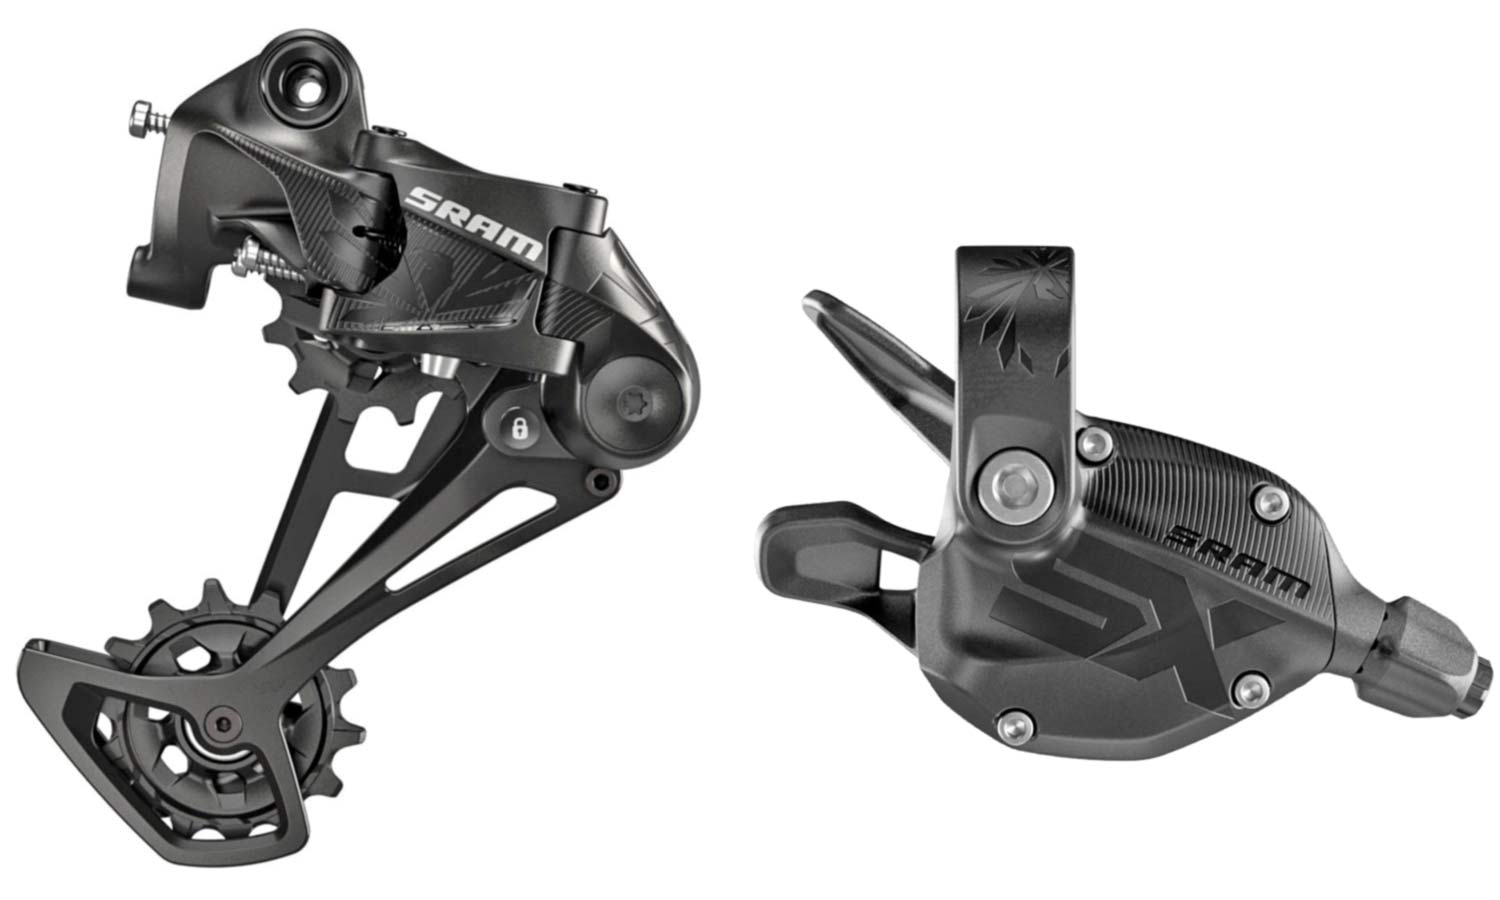 Transmission SRAM Eagle SX